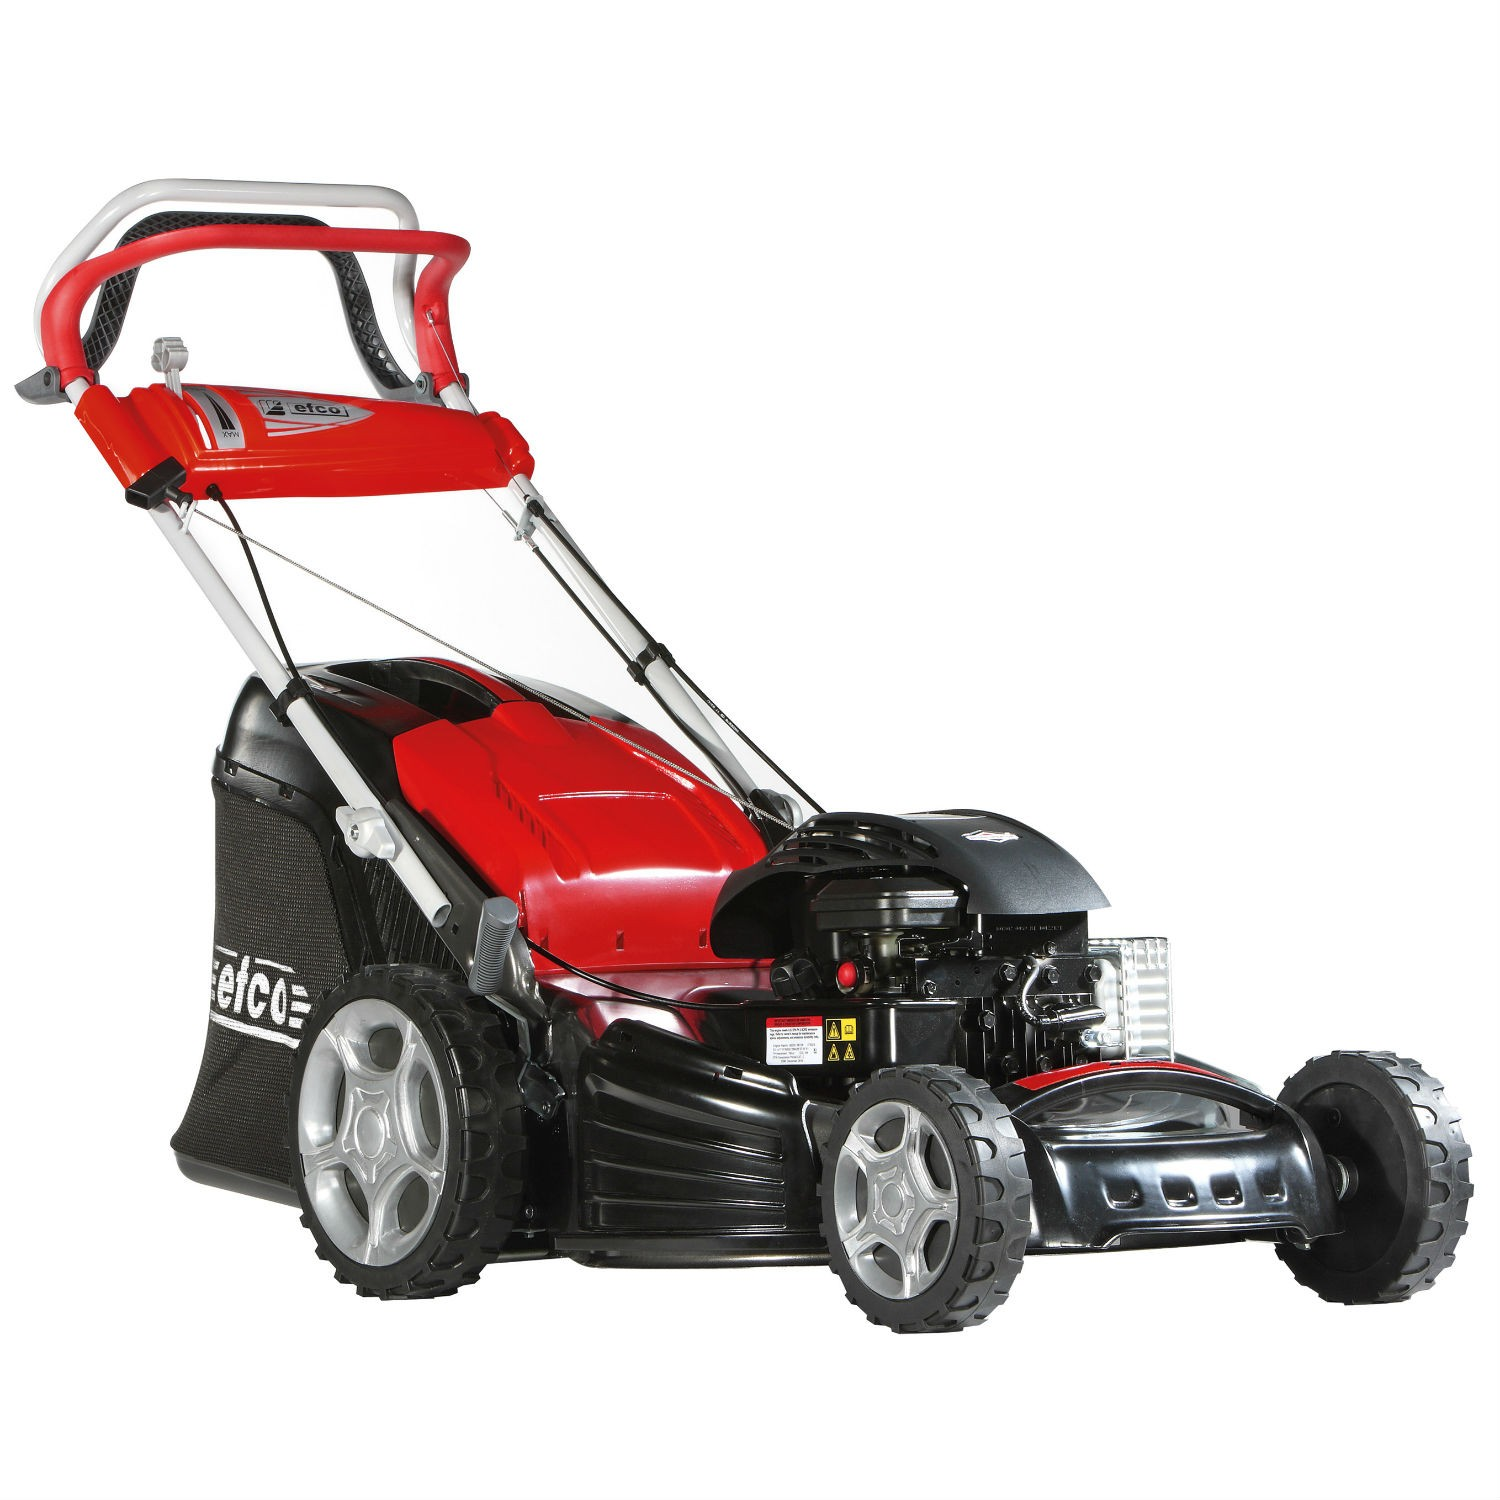 Efco LR48-TBR Allroad Plus 4 Self Propelled Lawn Mower